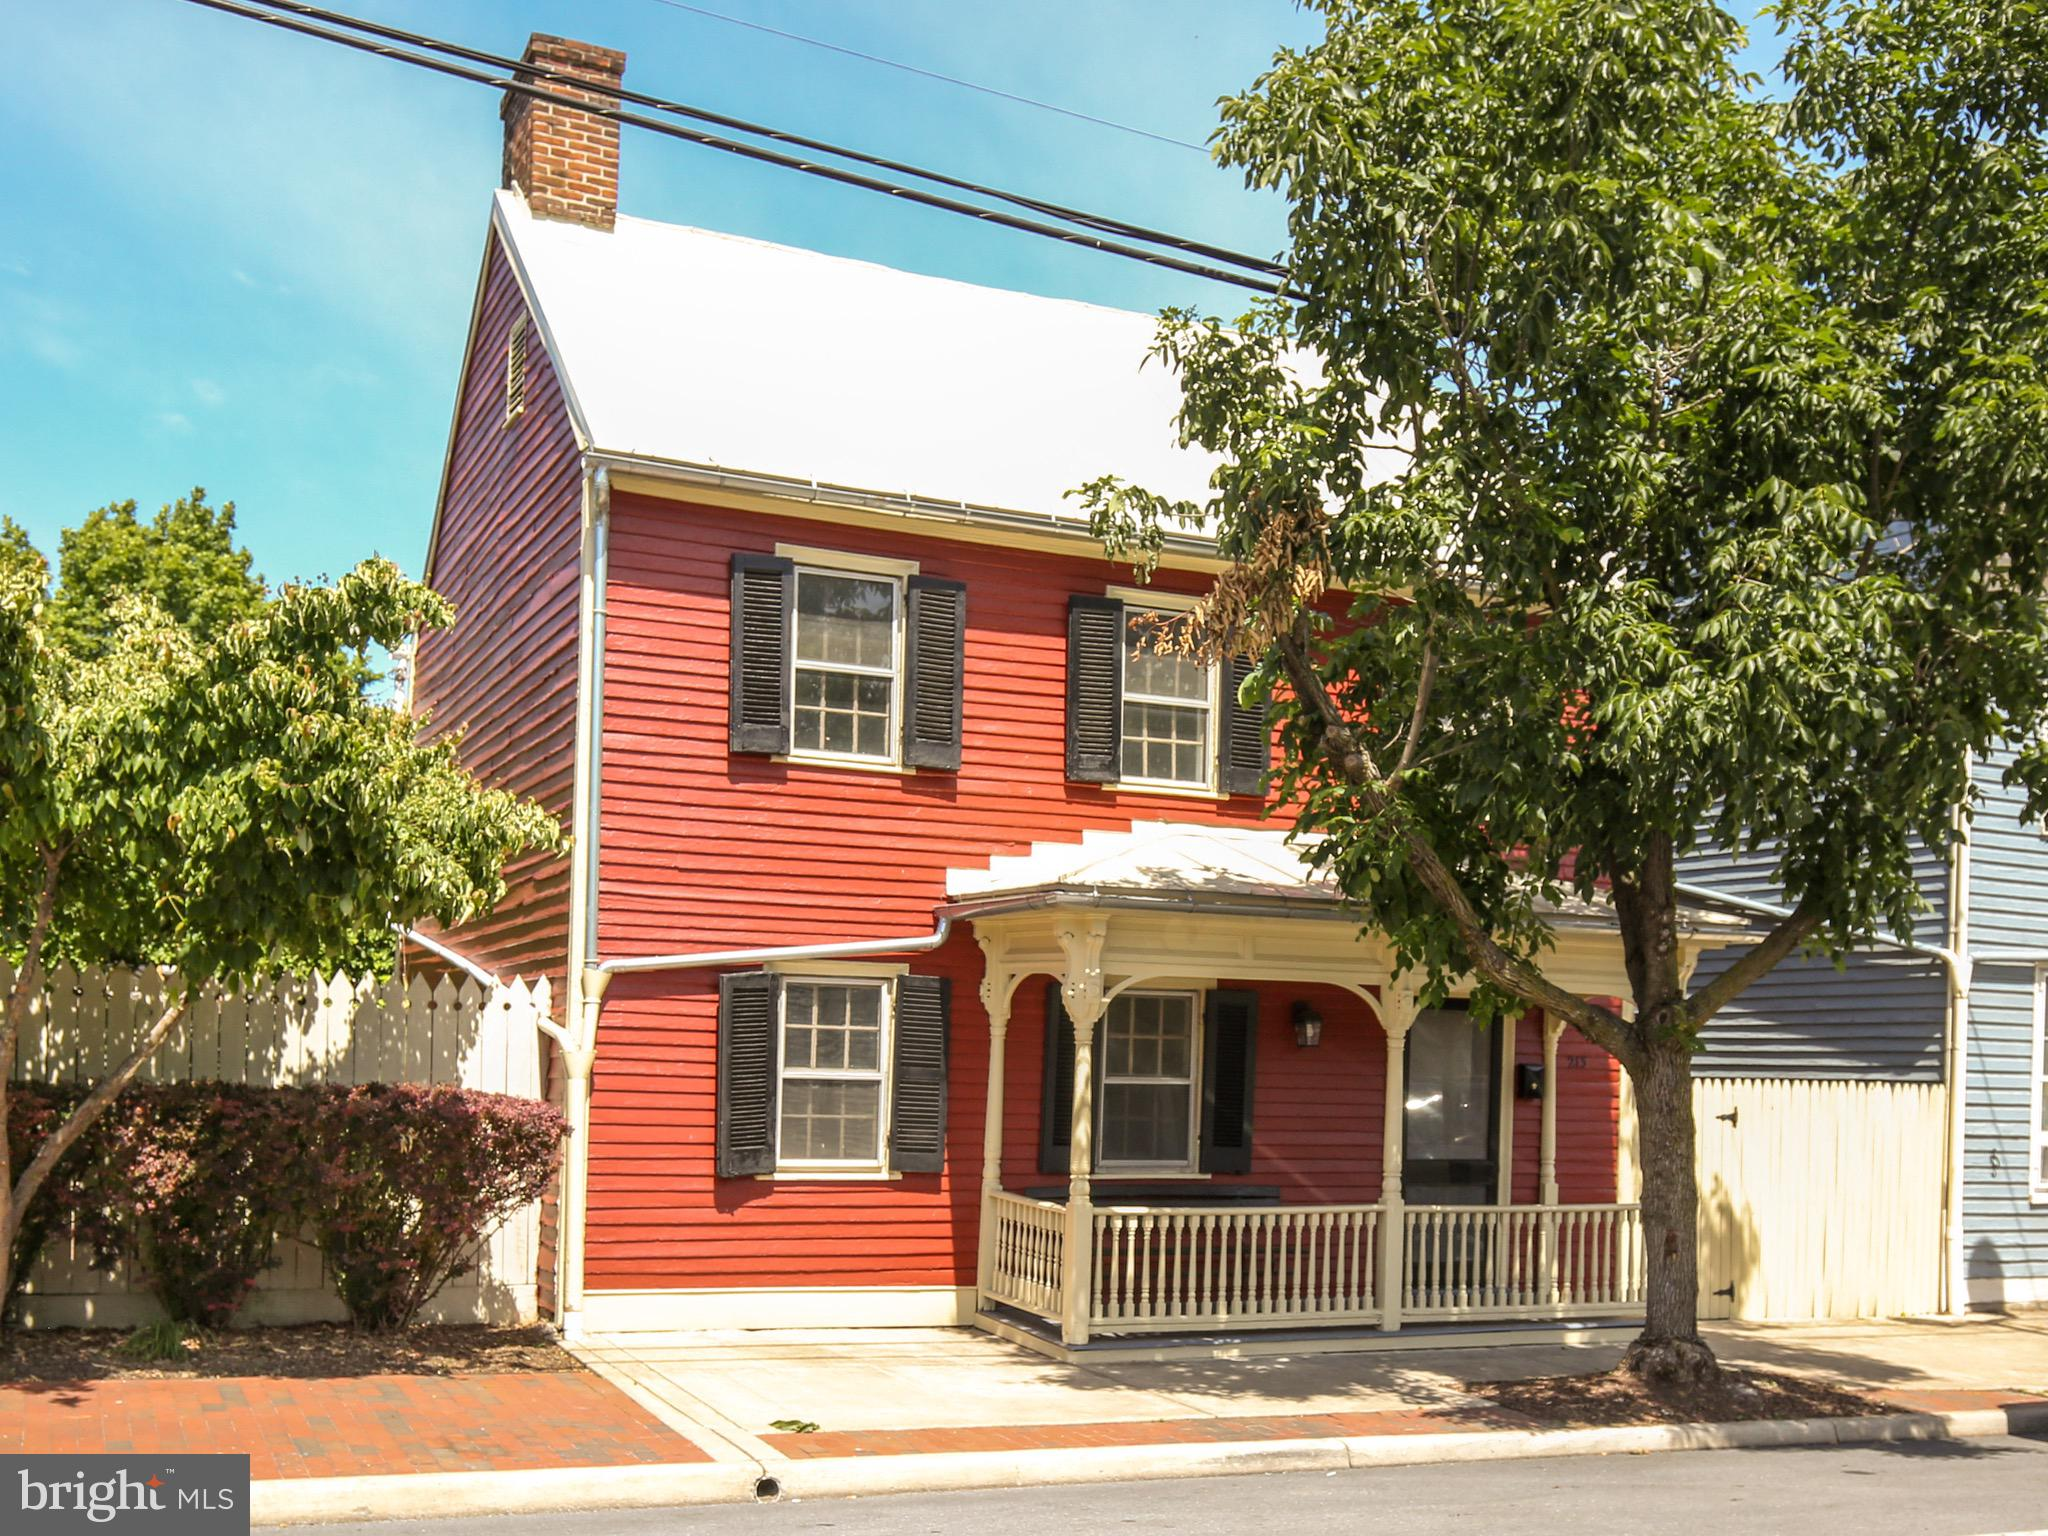 What a treasure in the heart of Winchester City! Built in 1759 and located within the Historic District, this renovated home is a rare find. Inside you will be greeted by meticulously restored plaster walls that you wish could talk and gleaming hardwood floors throughout. All new metal roof and gutters were installed in 2017. Home is listed as a four bedroom, but you do have to walk through one bedroom to access another, which is a typical layout of a house from this era. The spacious back yard has rear property access and covered off-street parking. Combined with non-metered parking out front, this house is made for gathering and enjoying all that is Old Town Winchester. Walk out the front door and you will discover the charm of a quaint community that offers restaurants, entertainment, shopping, museums, businesses, and more, within steps!   Home is zoned RB1. Whether for pleasure or business you will appreciate the ambiance and convenience this downtown location has to offer while being a part of the continued history of this unique property.